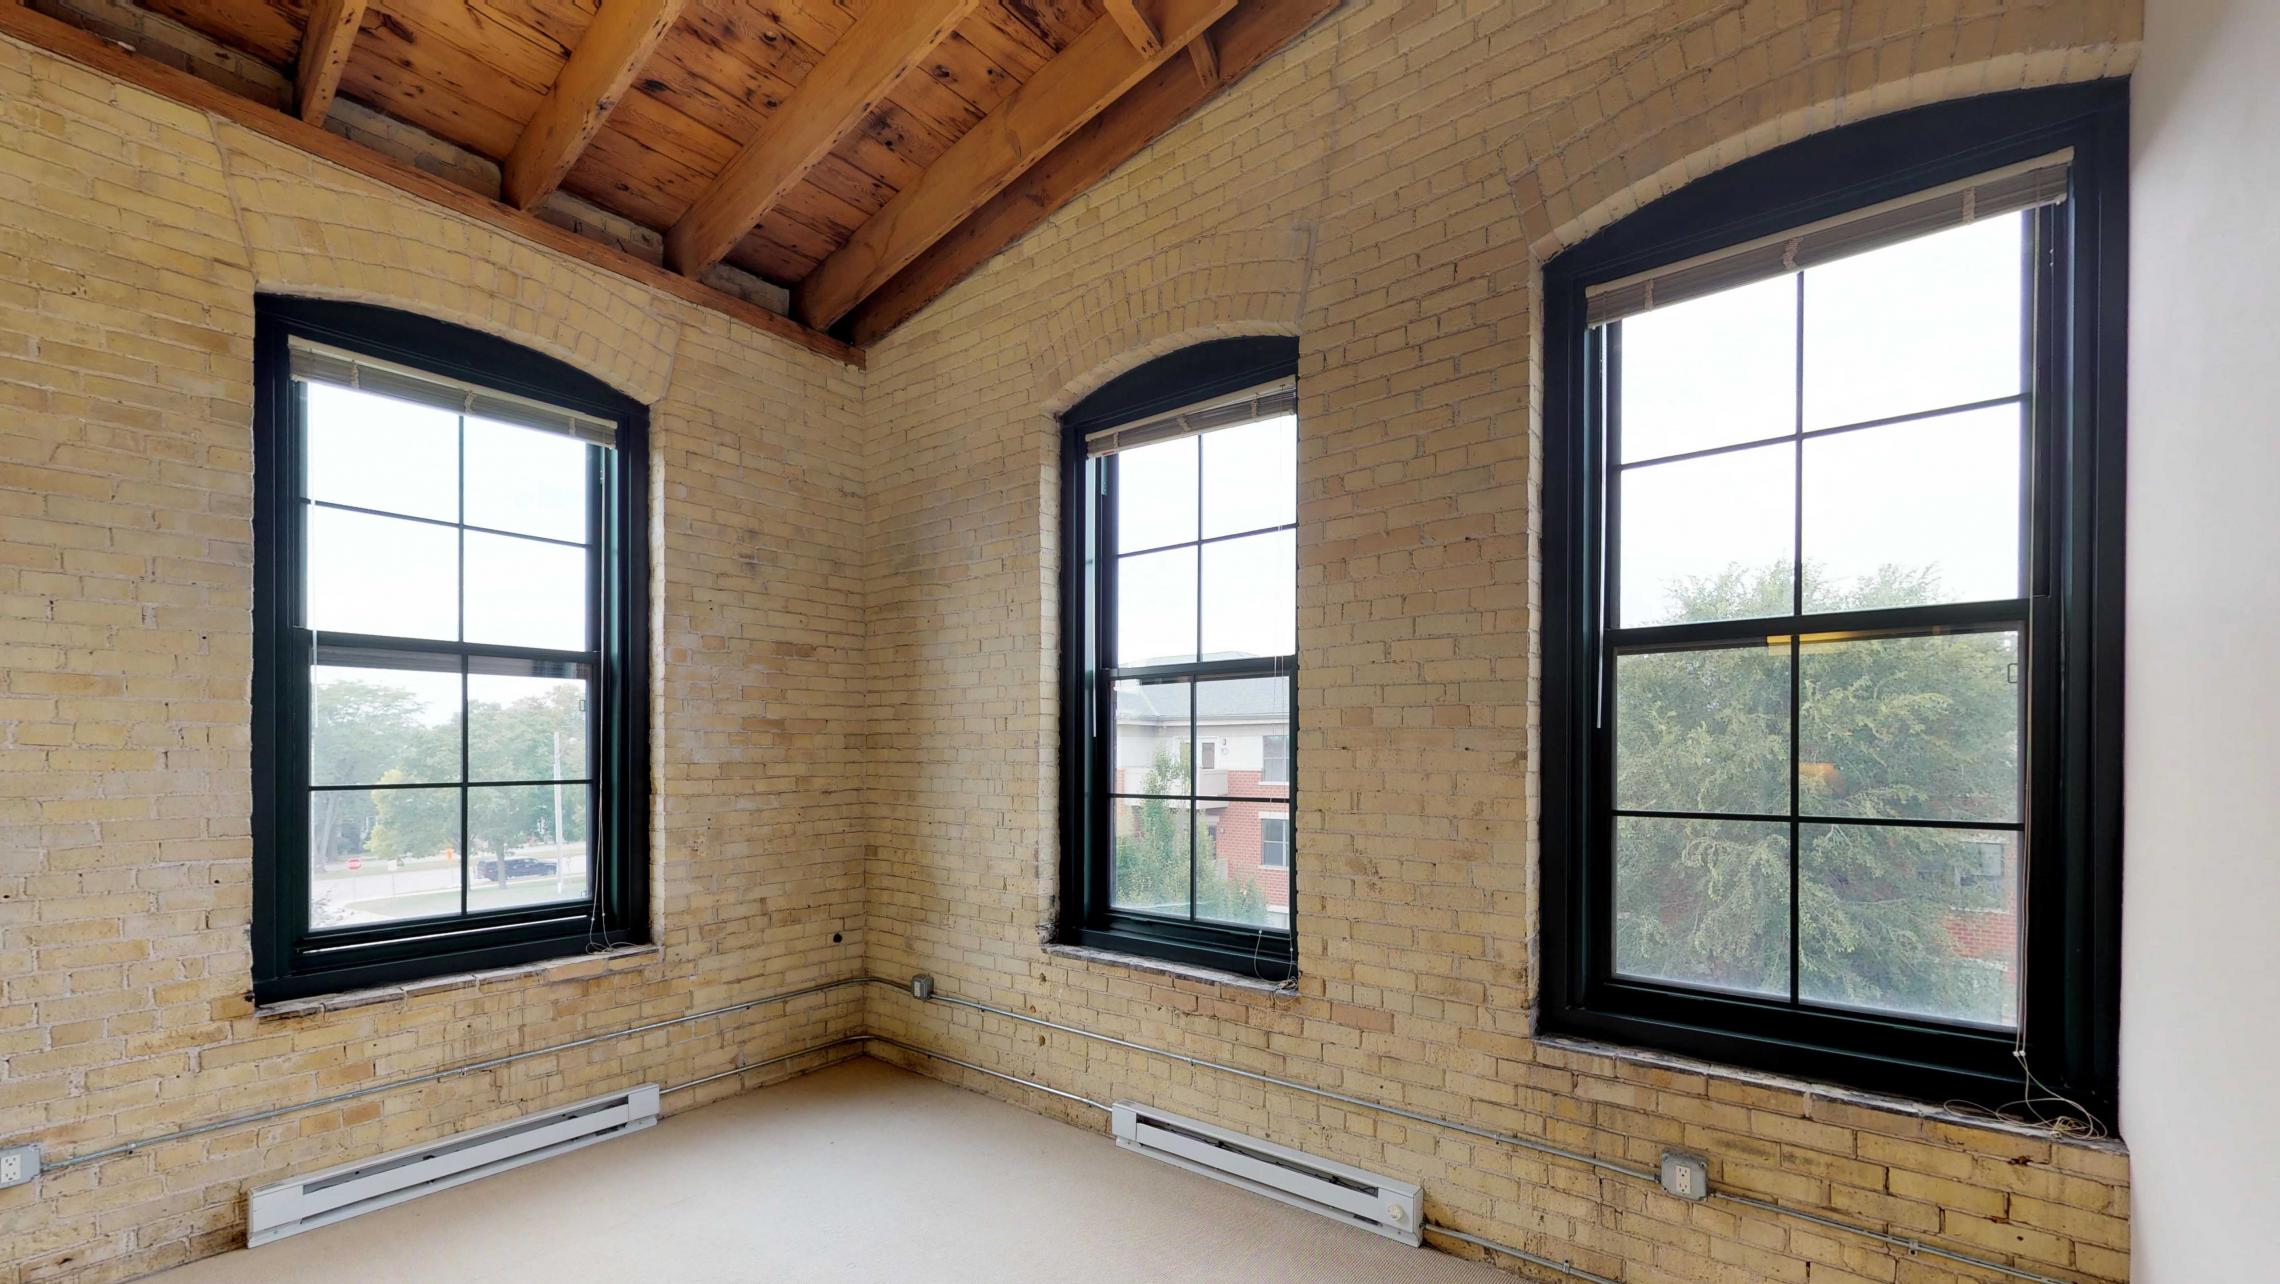 Tobacco-Lofts-Apartments-E312-Two-bedroom-Corner-Downtown-Madison-Historic-Yards-Exposures-Windows.jpg